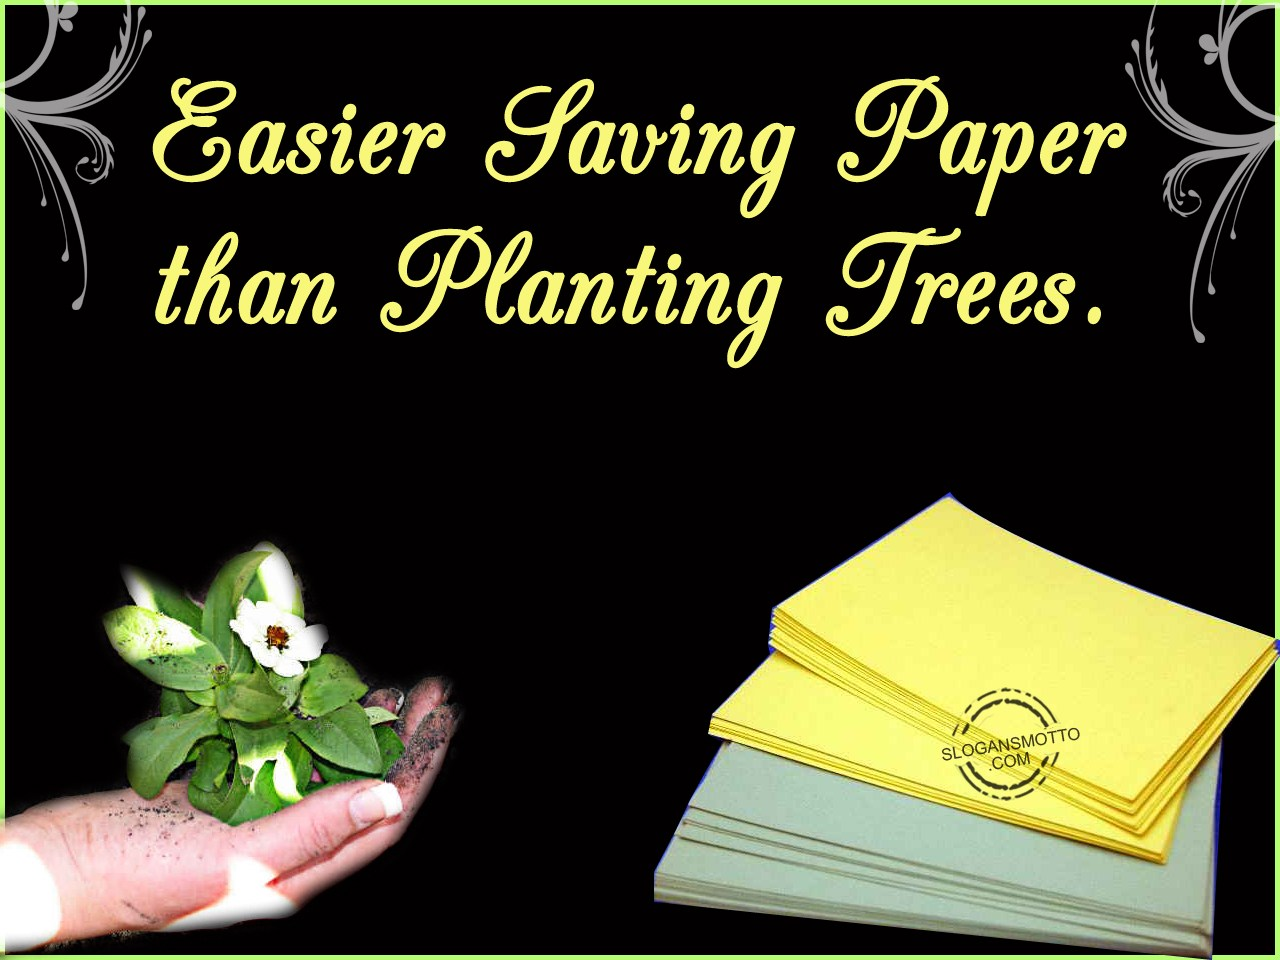 https://www.slogansmotto.com/wp-content/uploads/Easier-saving-paper-than-planting-trees.jpg